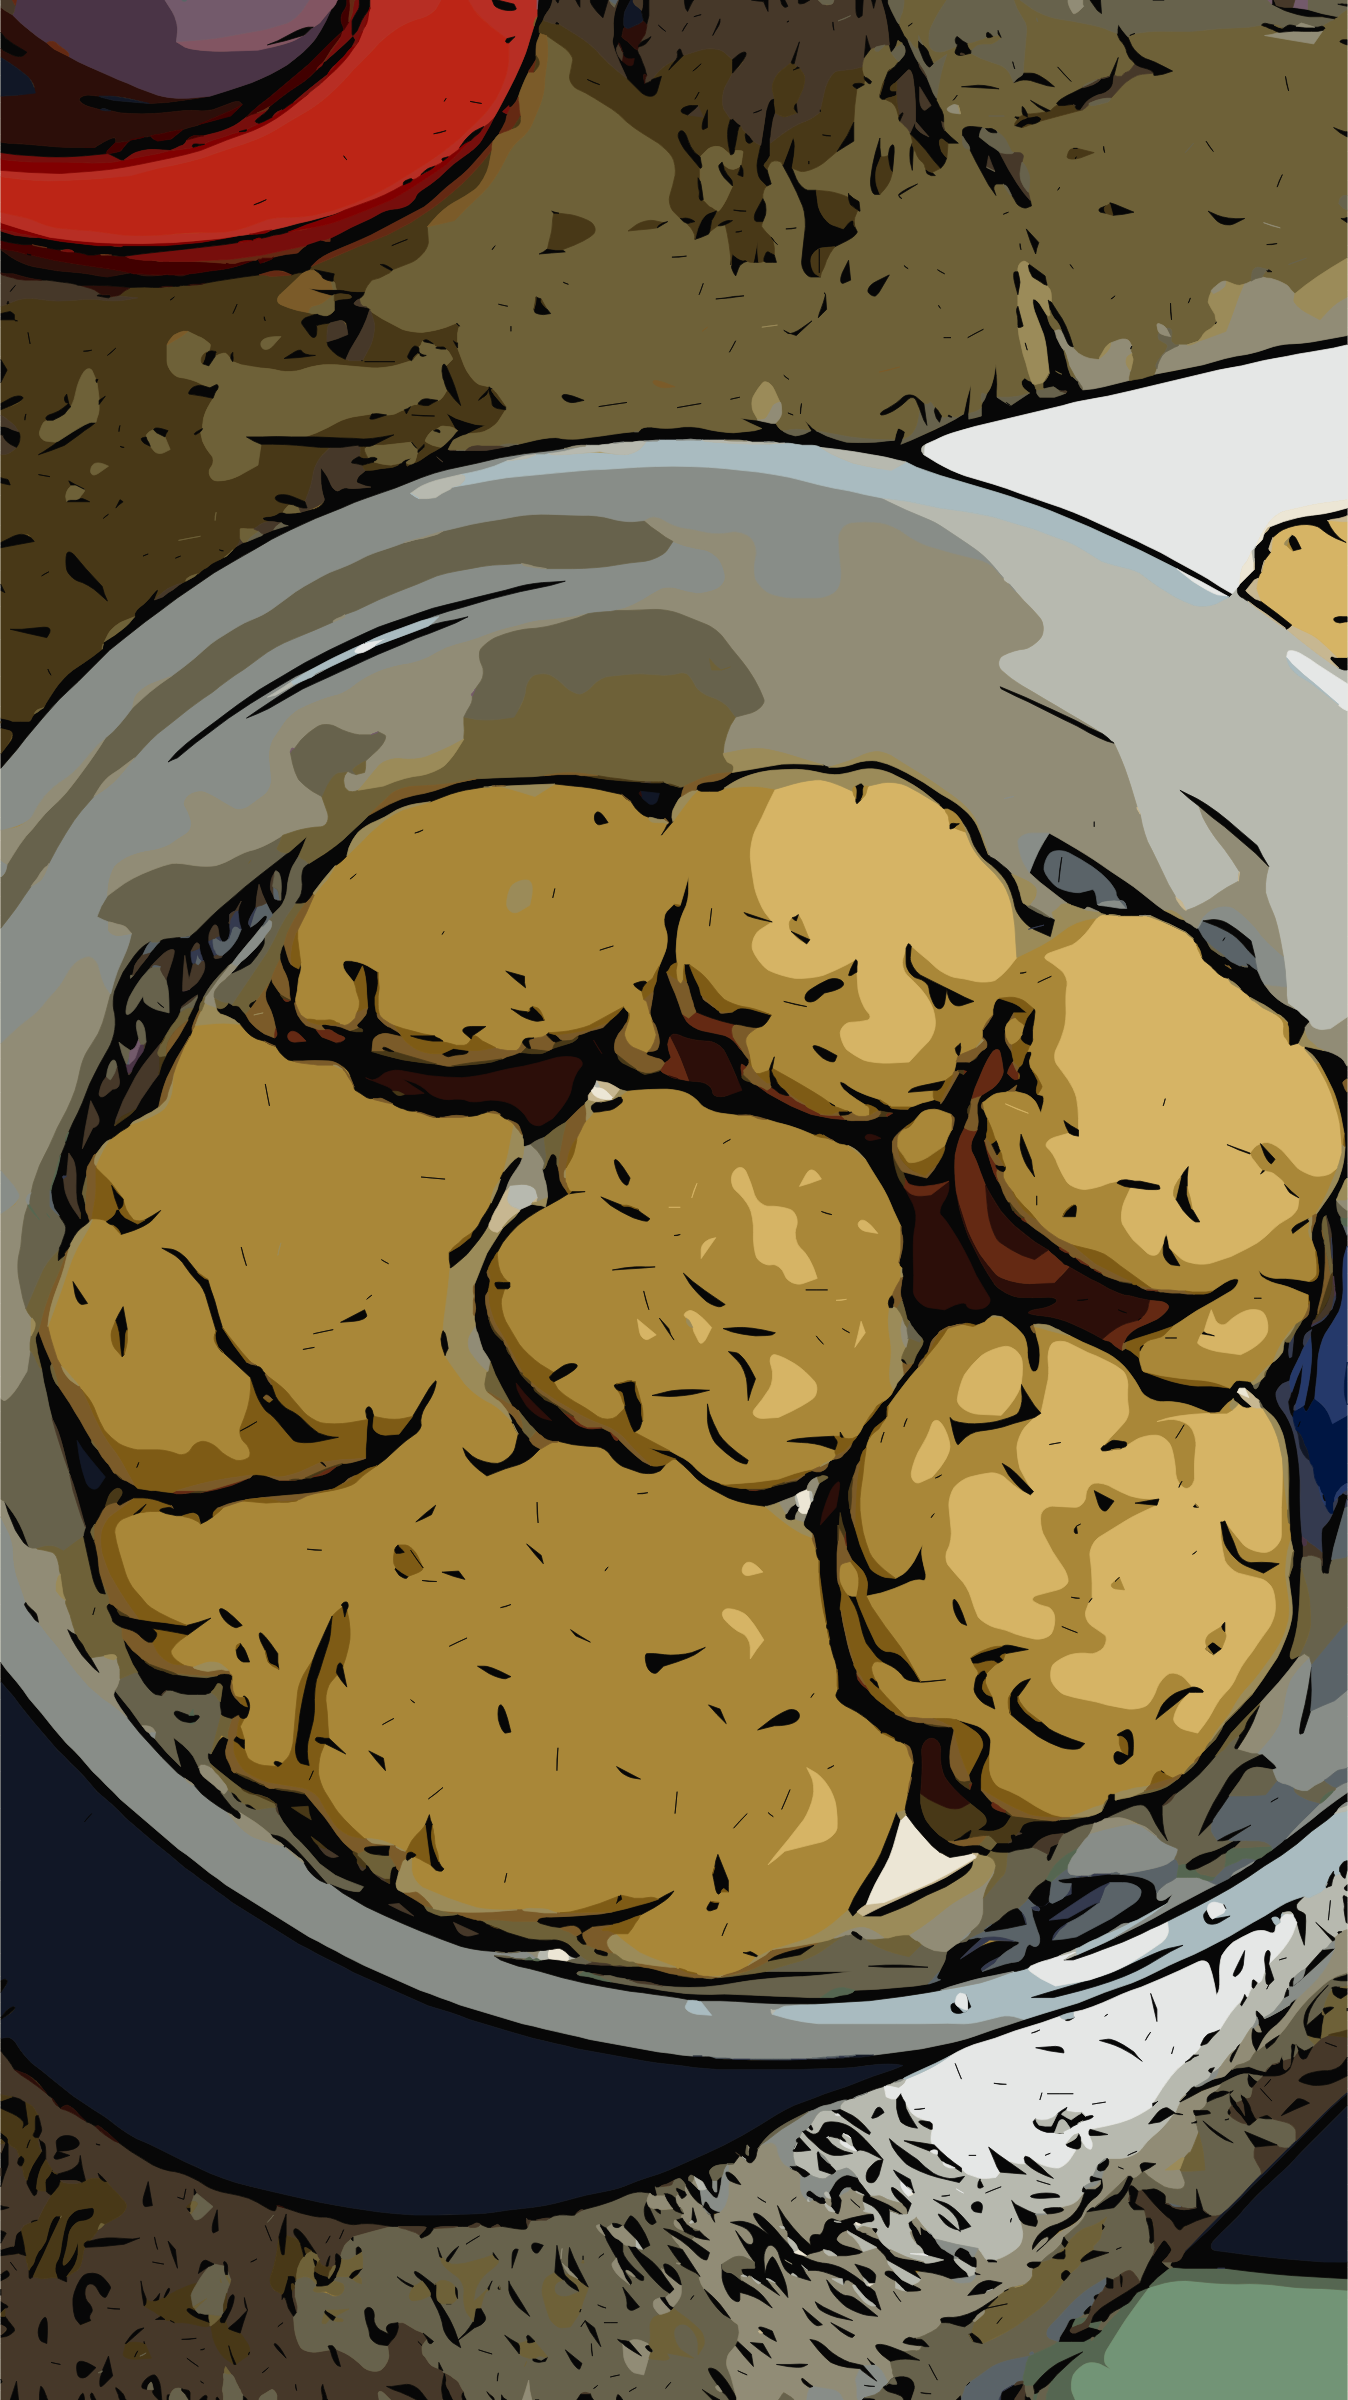 Moms peanut butter cookies by rejon